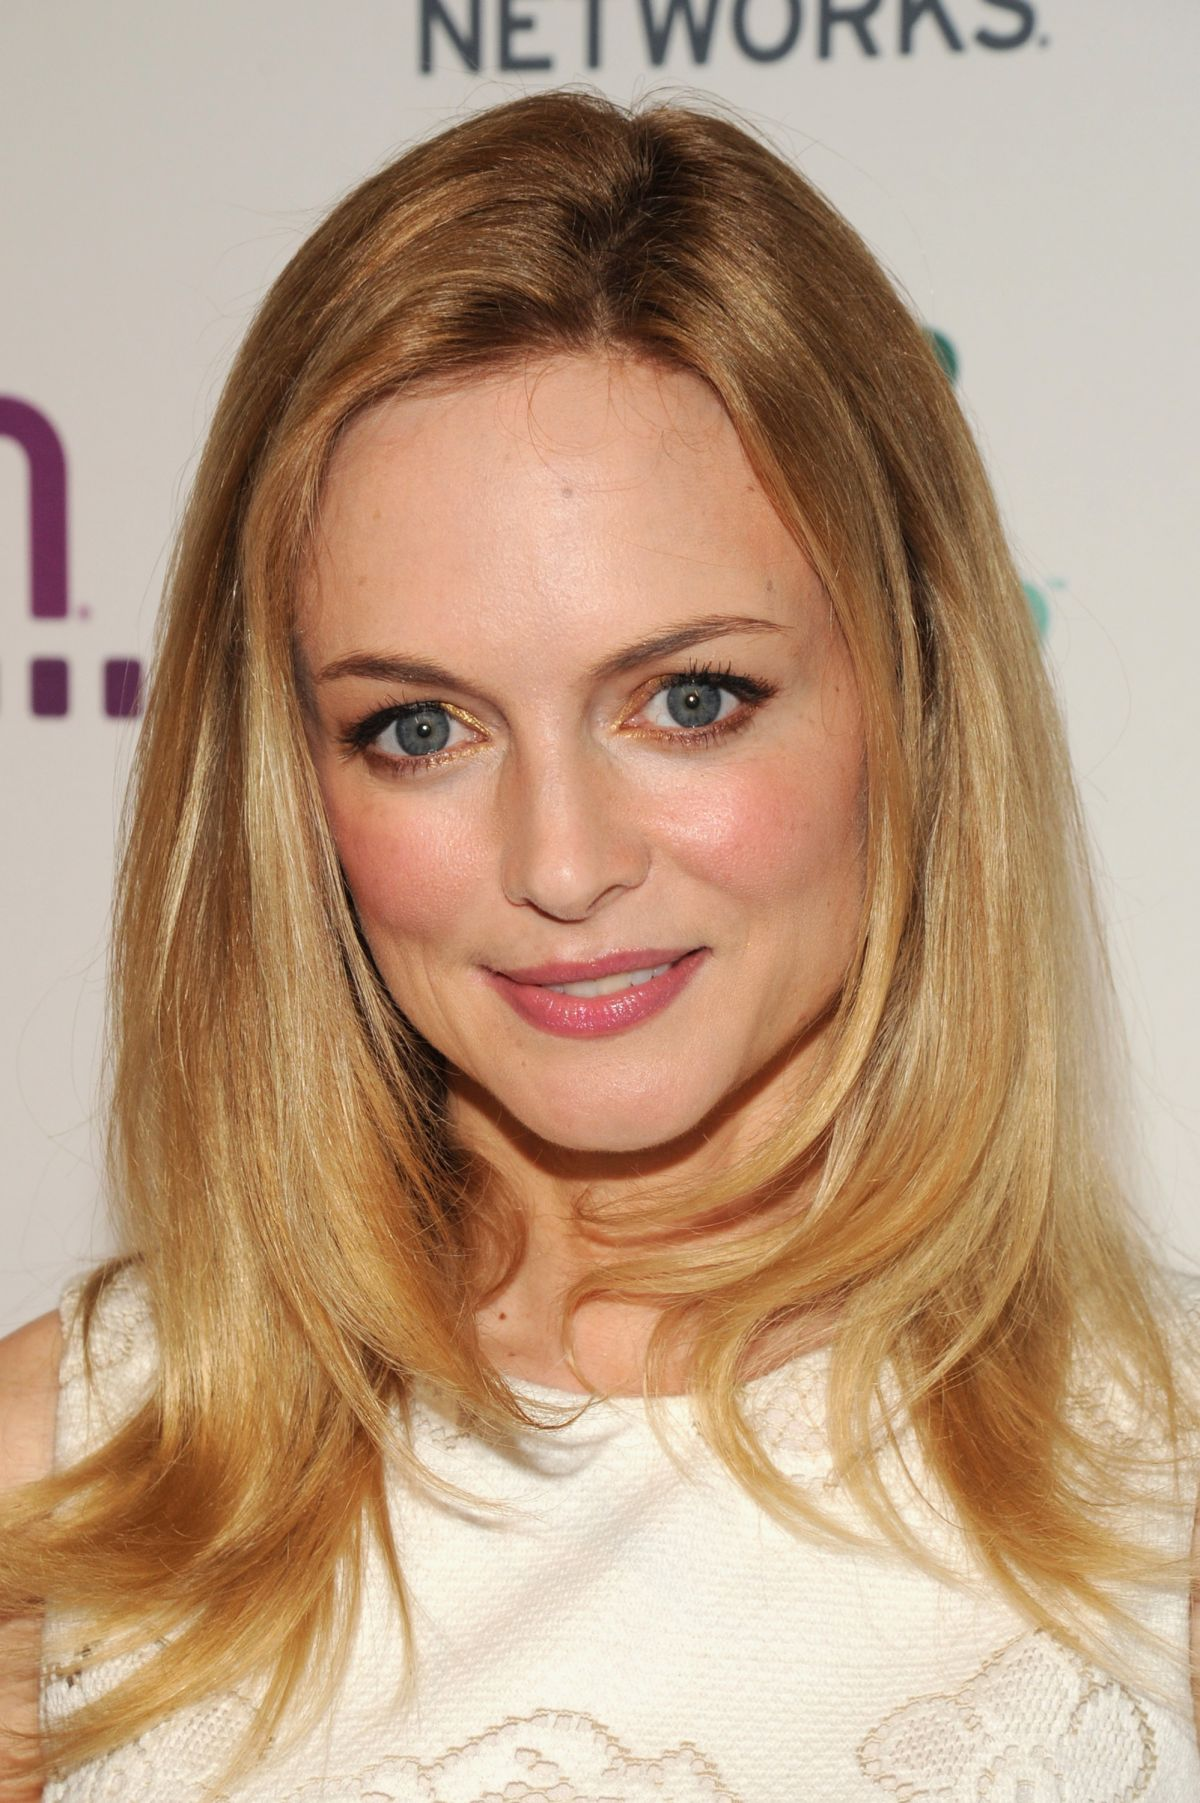 Heather Graham At 2014 A+E Networks Upfront In NYC - Celebzz